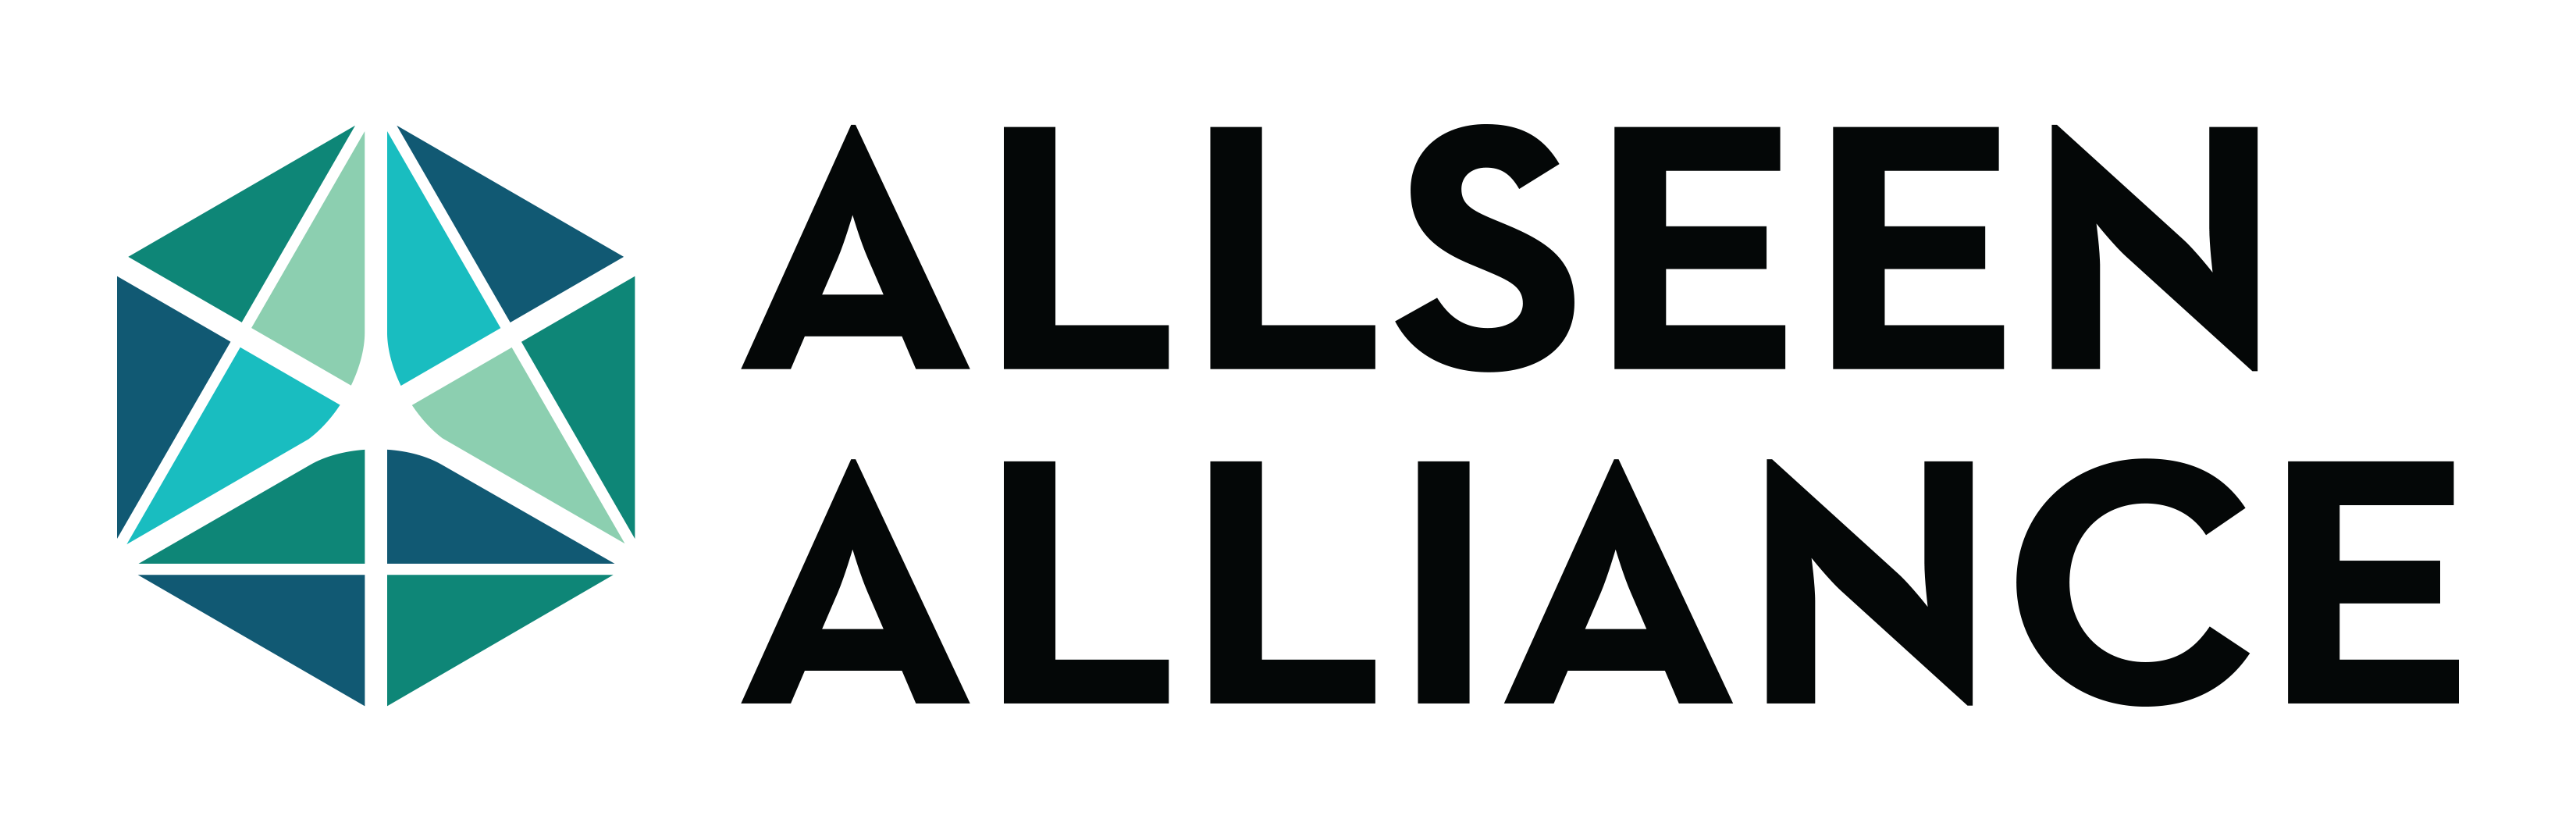 allseen alliance color primary rgb